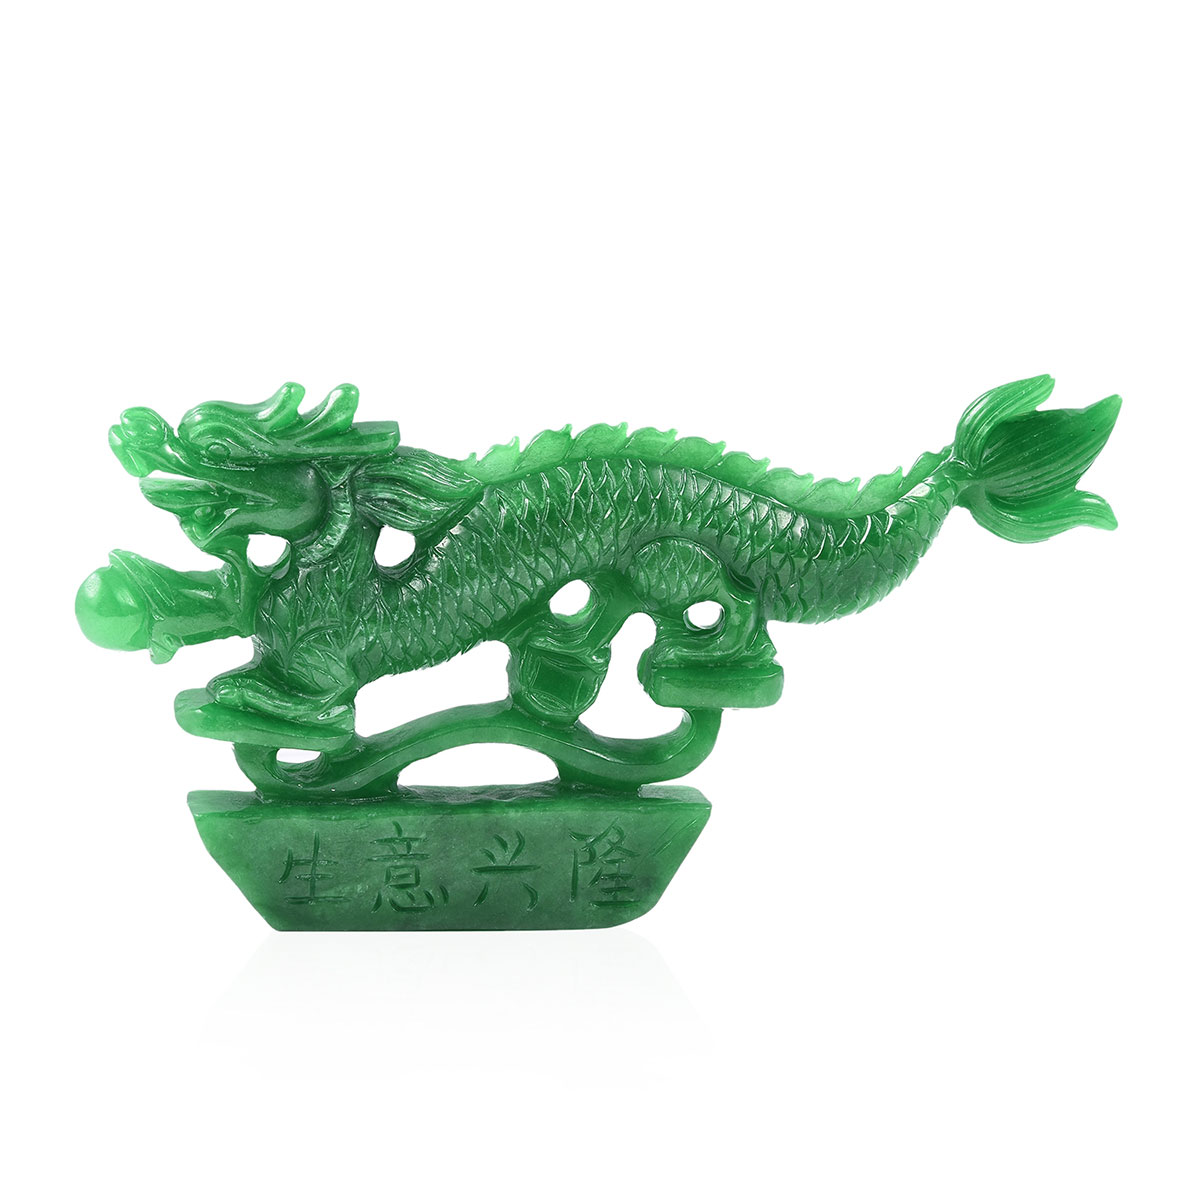 Jade Nile hand carved burmese green jade chinese dragon home decor (4x4.5 in) 929ctw